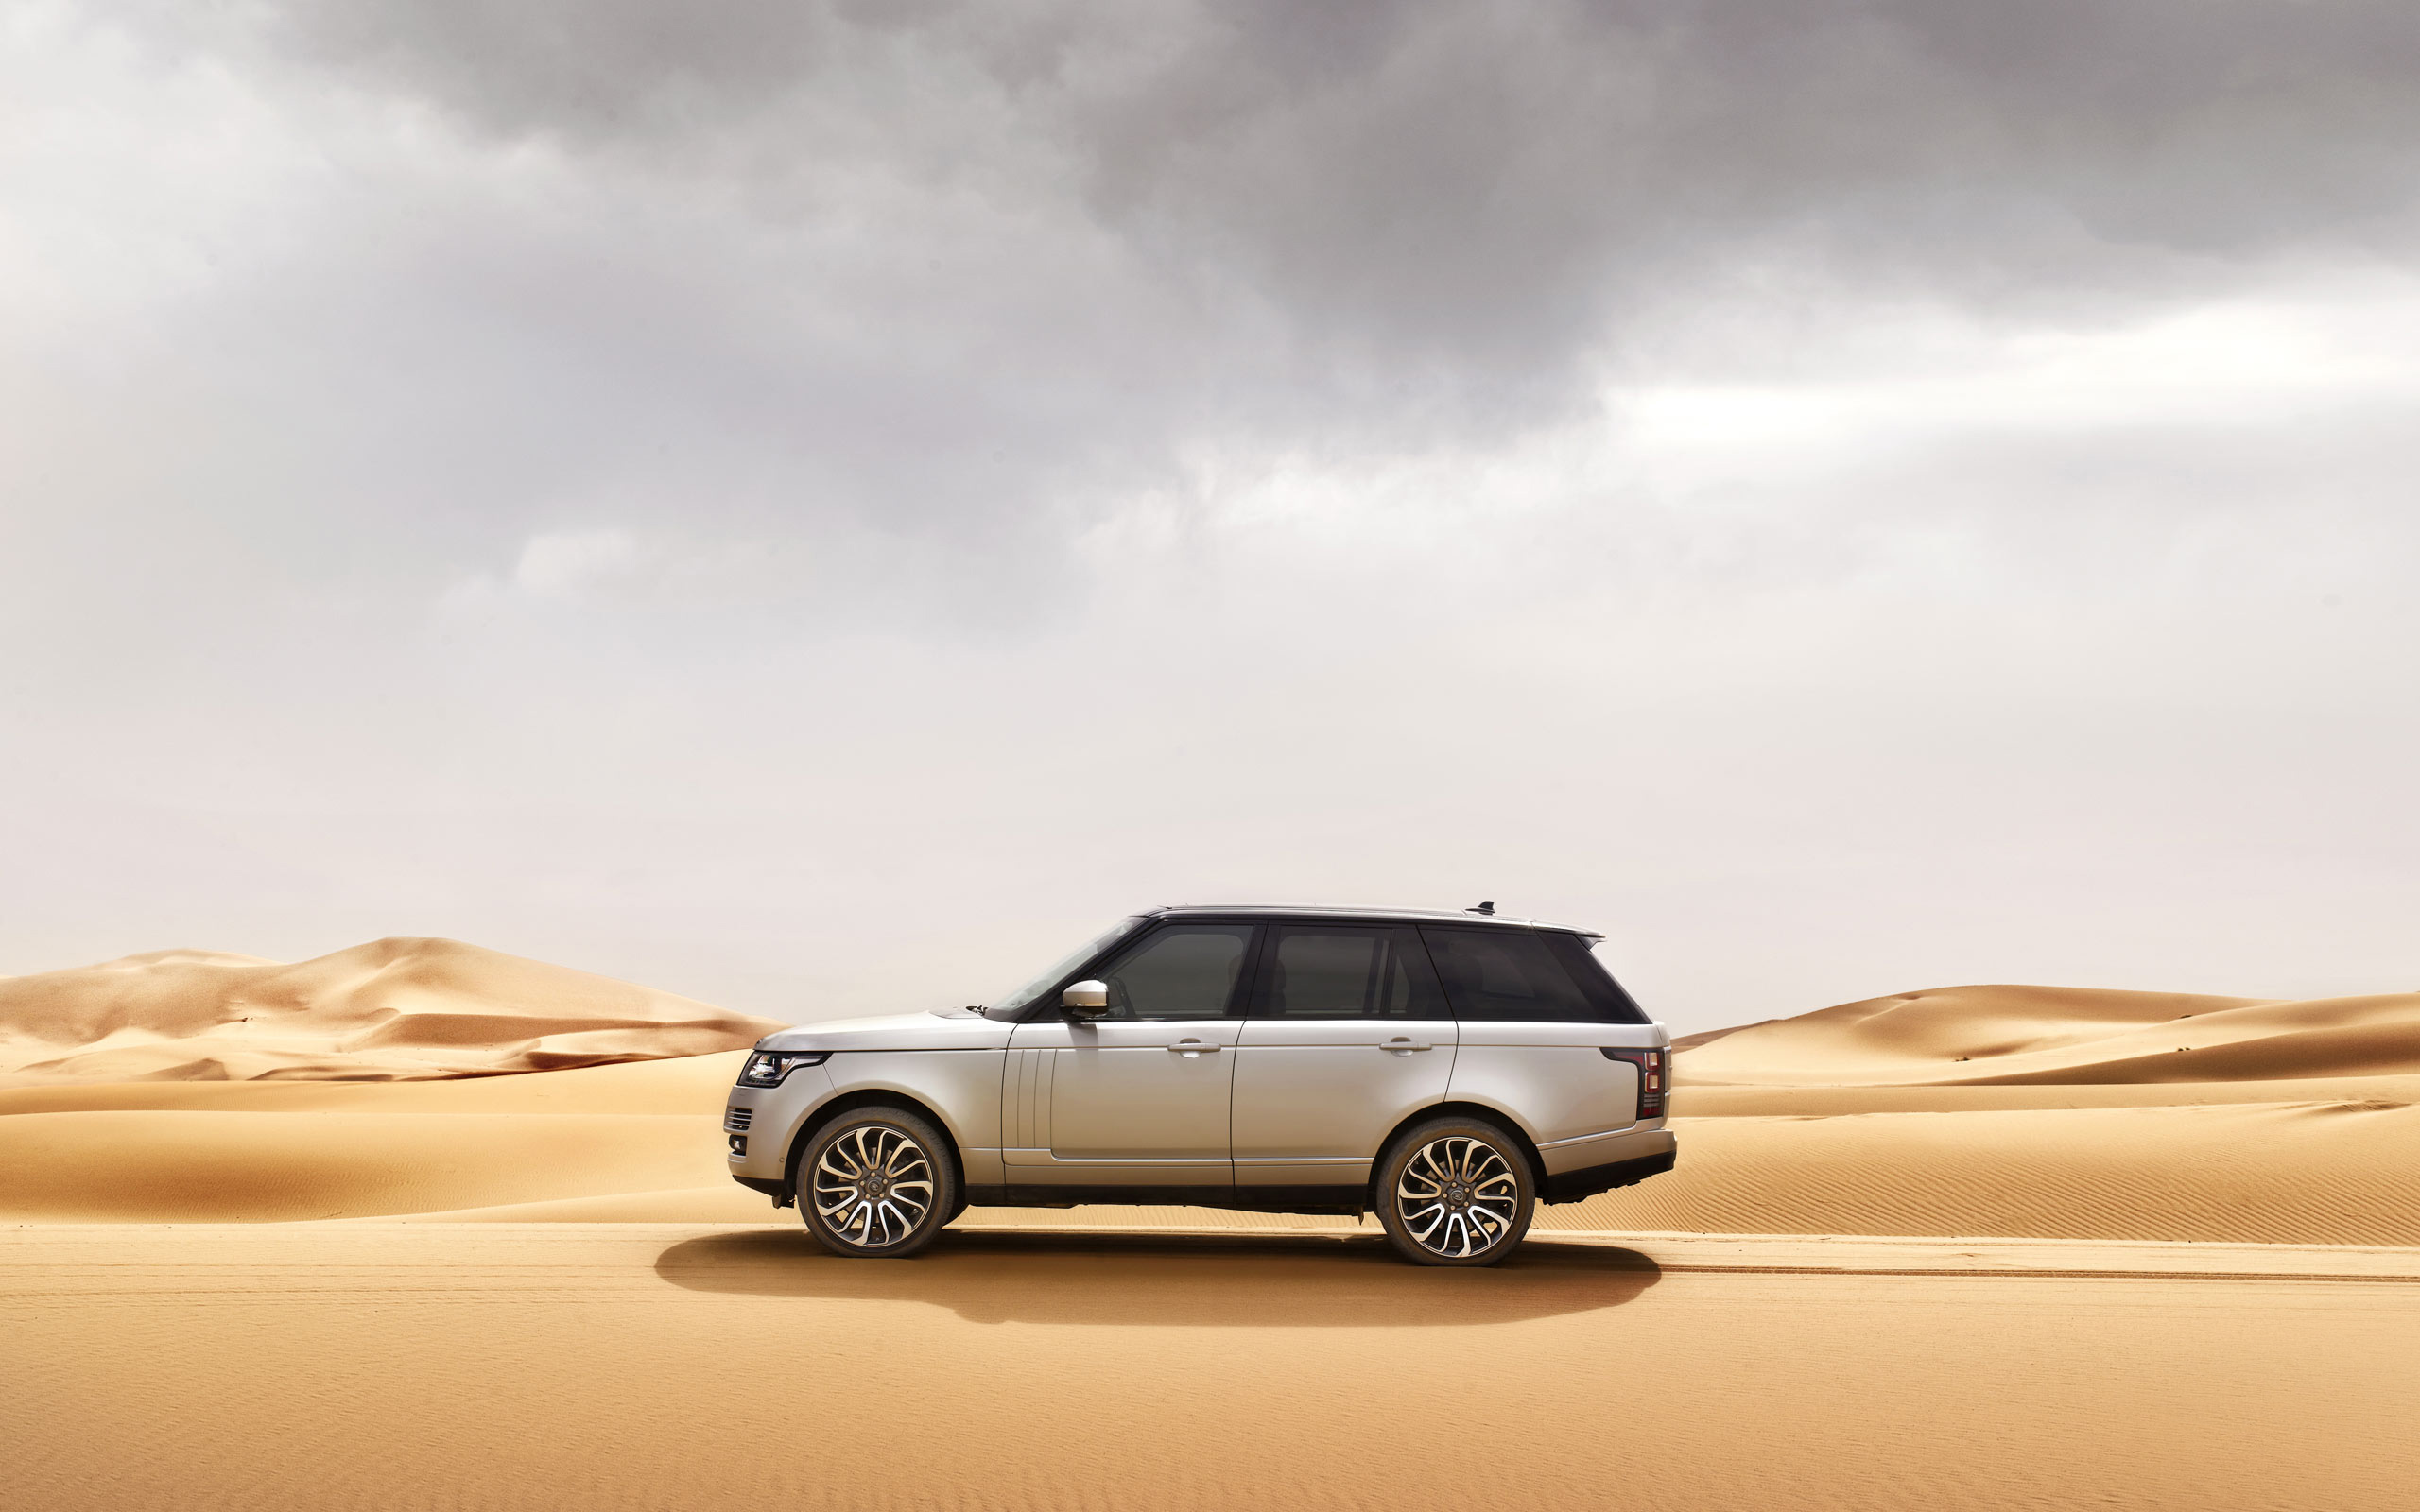 Range Rover Wallpaper Cool Cars